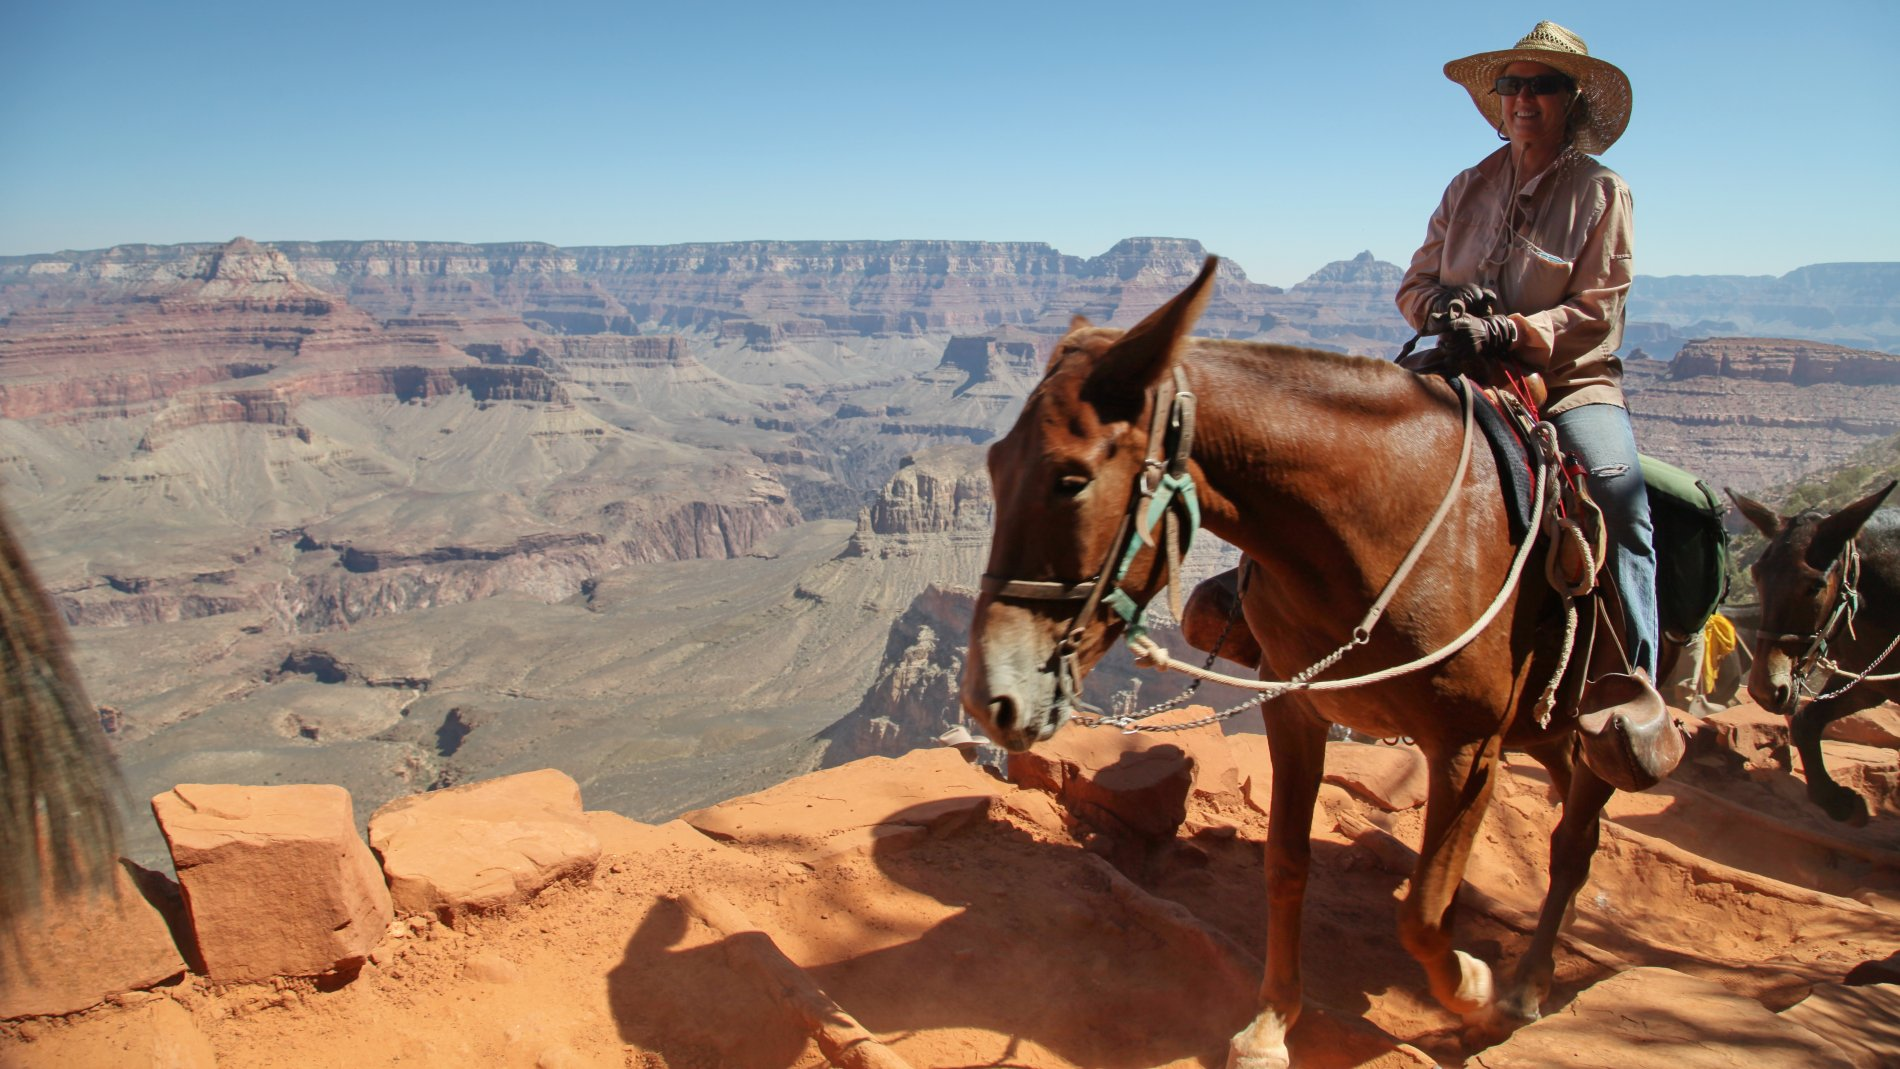 IMG_1021.JPG: cowgirl, Grand Canyon